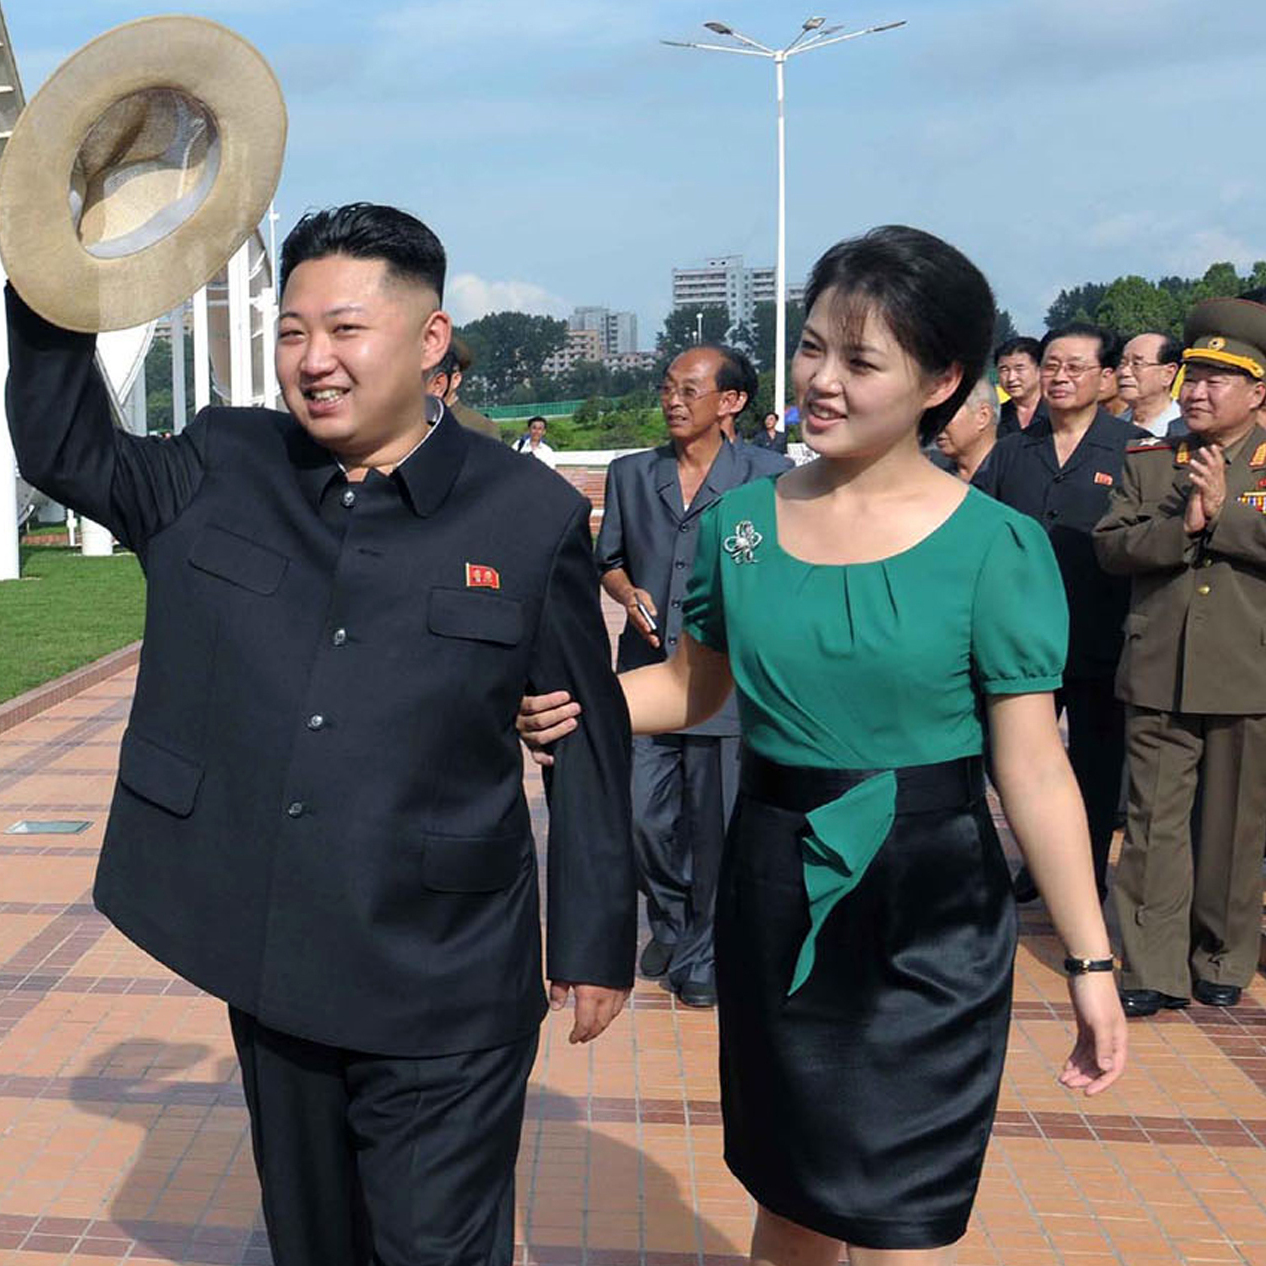 North Korean leader Kim Jong Un (center), accompanied by his wife, Ri Sol Ju, waves to the crowd as they inspect the Rungna People's Pleasure Ground in Pyongyang on July 25 in this photo released by the Korean Central News Agency. For North Koreans, it was stunning to see the first lady at the leader's side -- and holding his arm.